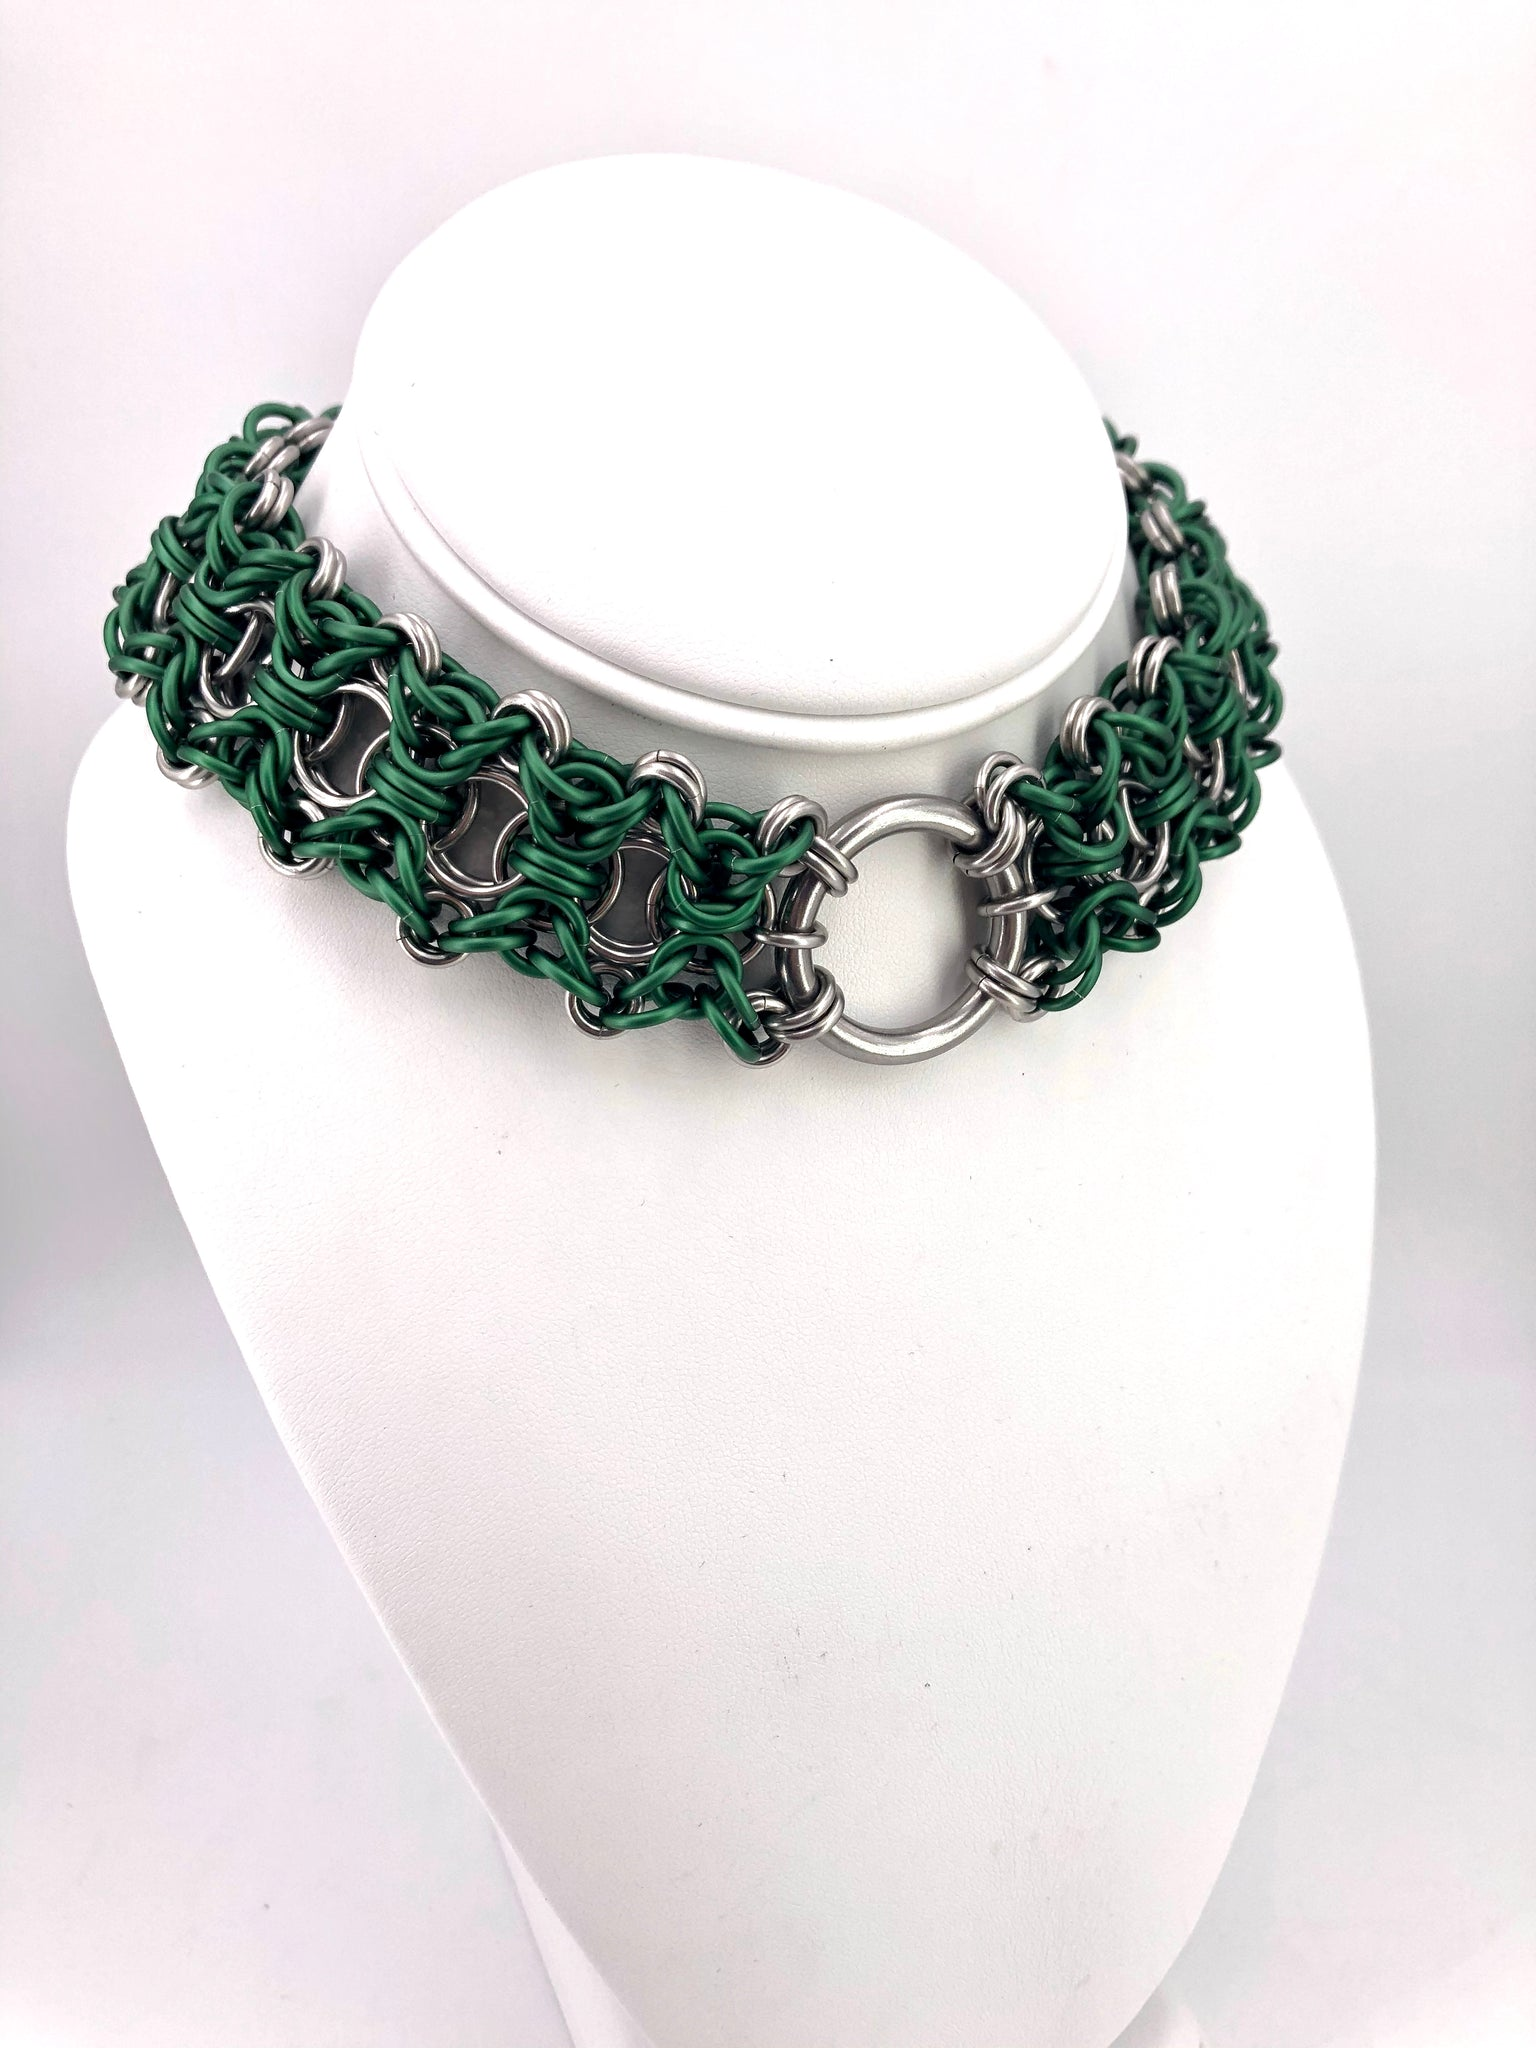 Green BDSM Collar with Center Ring